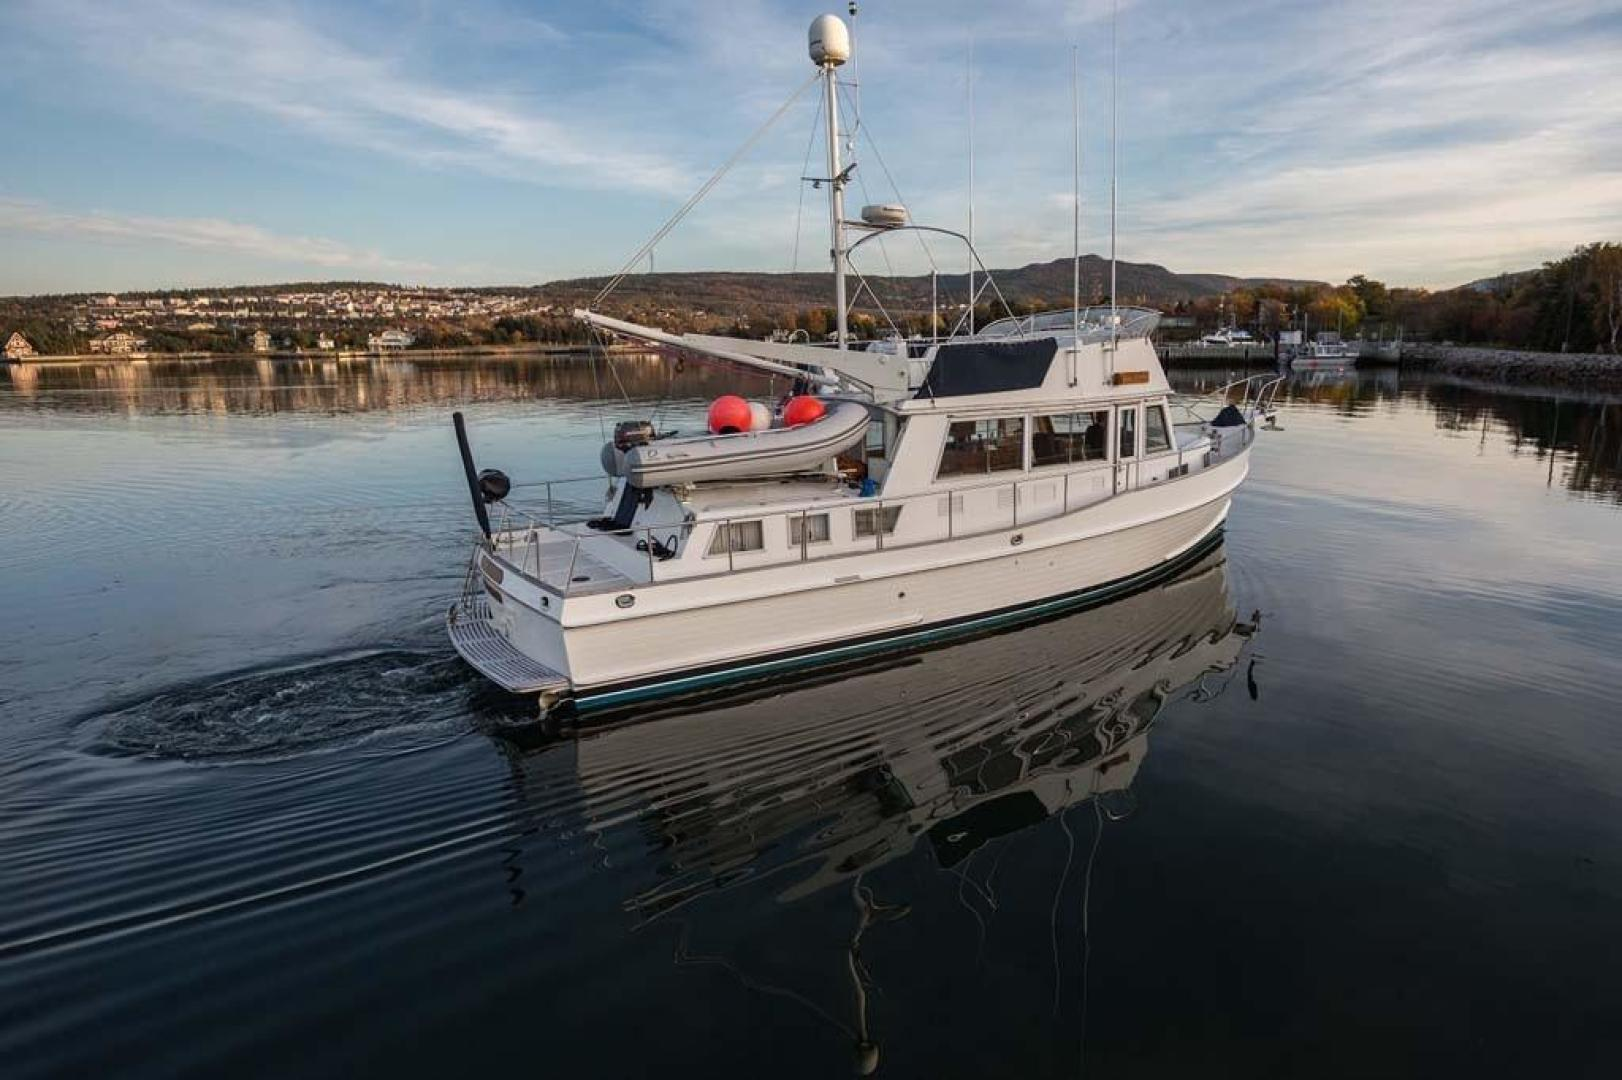 Grand Banks-42 Classic 1995-Little Salmonier St. Johns-Newfoundland And Labrador-Canada-Starboard Profile-920898 | Thumbnail